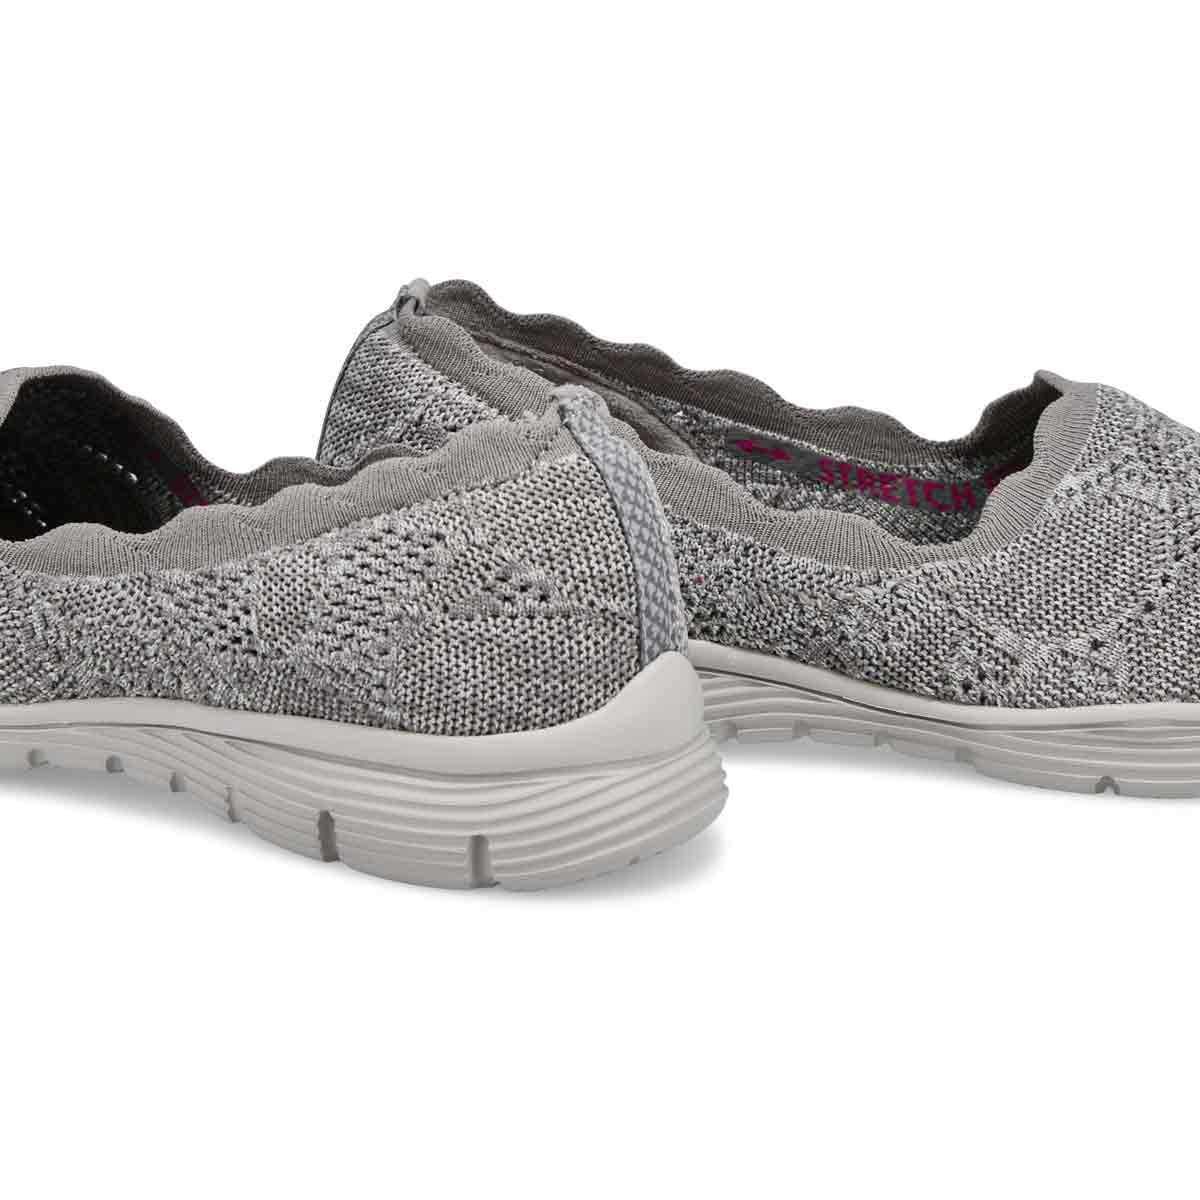 Women's Seager Bases Covered Shoe - Grey